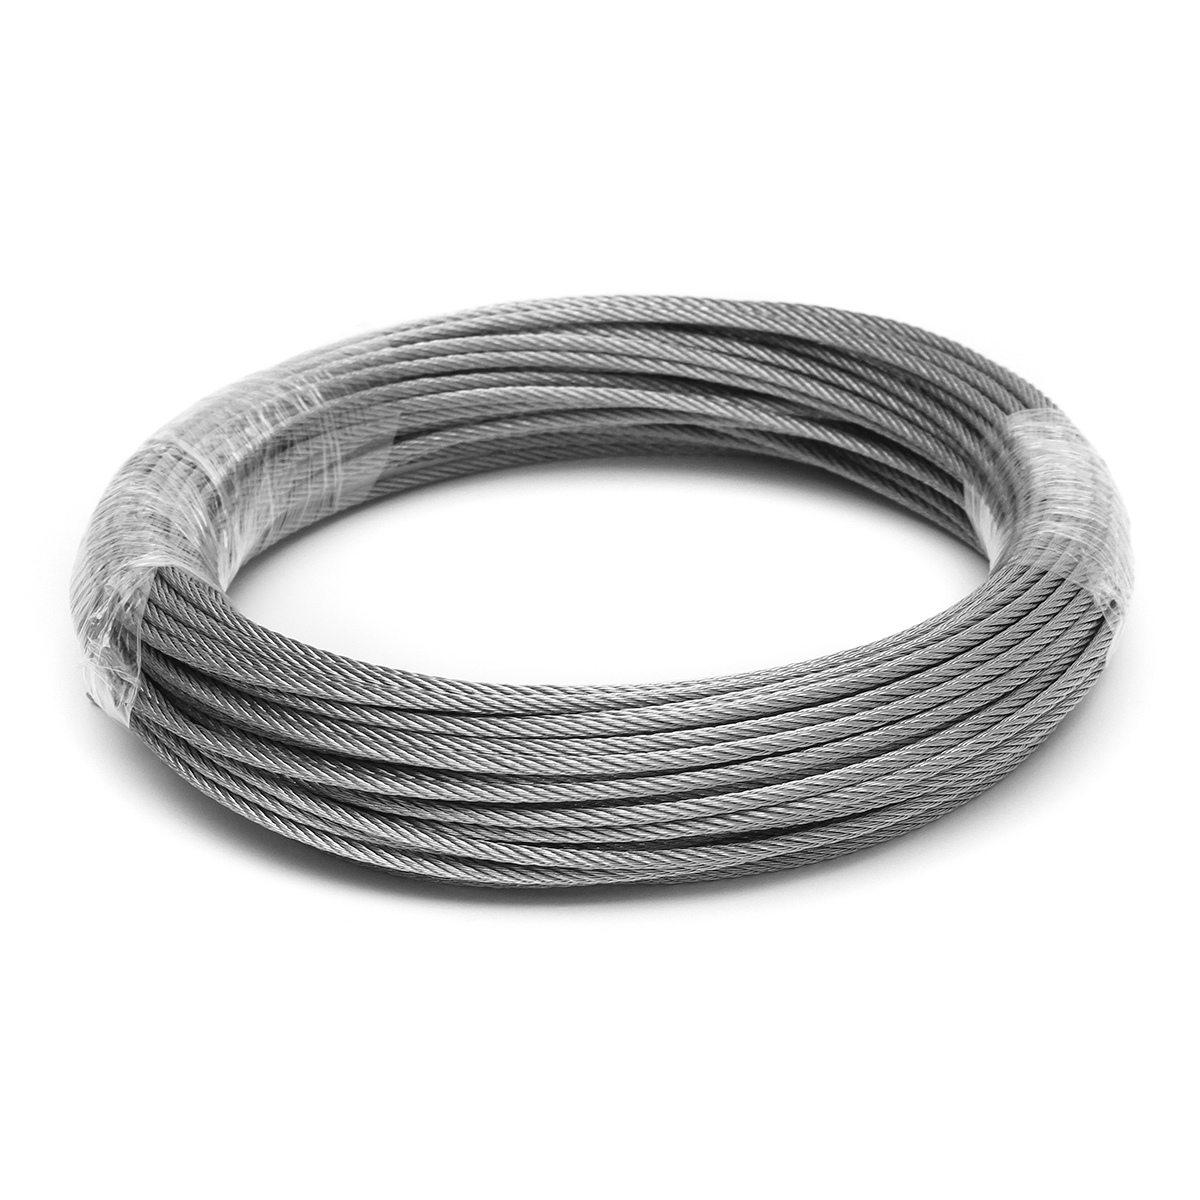 1.5mm Stainless Steel Wire Rope Fishing Lifting Cable Tensile Diameter 1.5mm Structure Cable 1M/ 5M/ 10M/15M/ 20M/25M/ 50M/ 100M